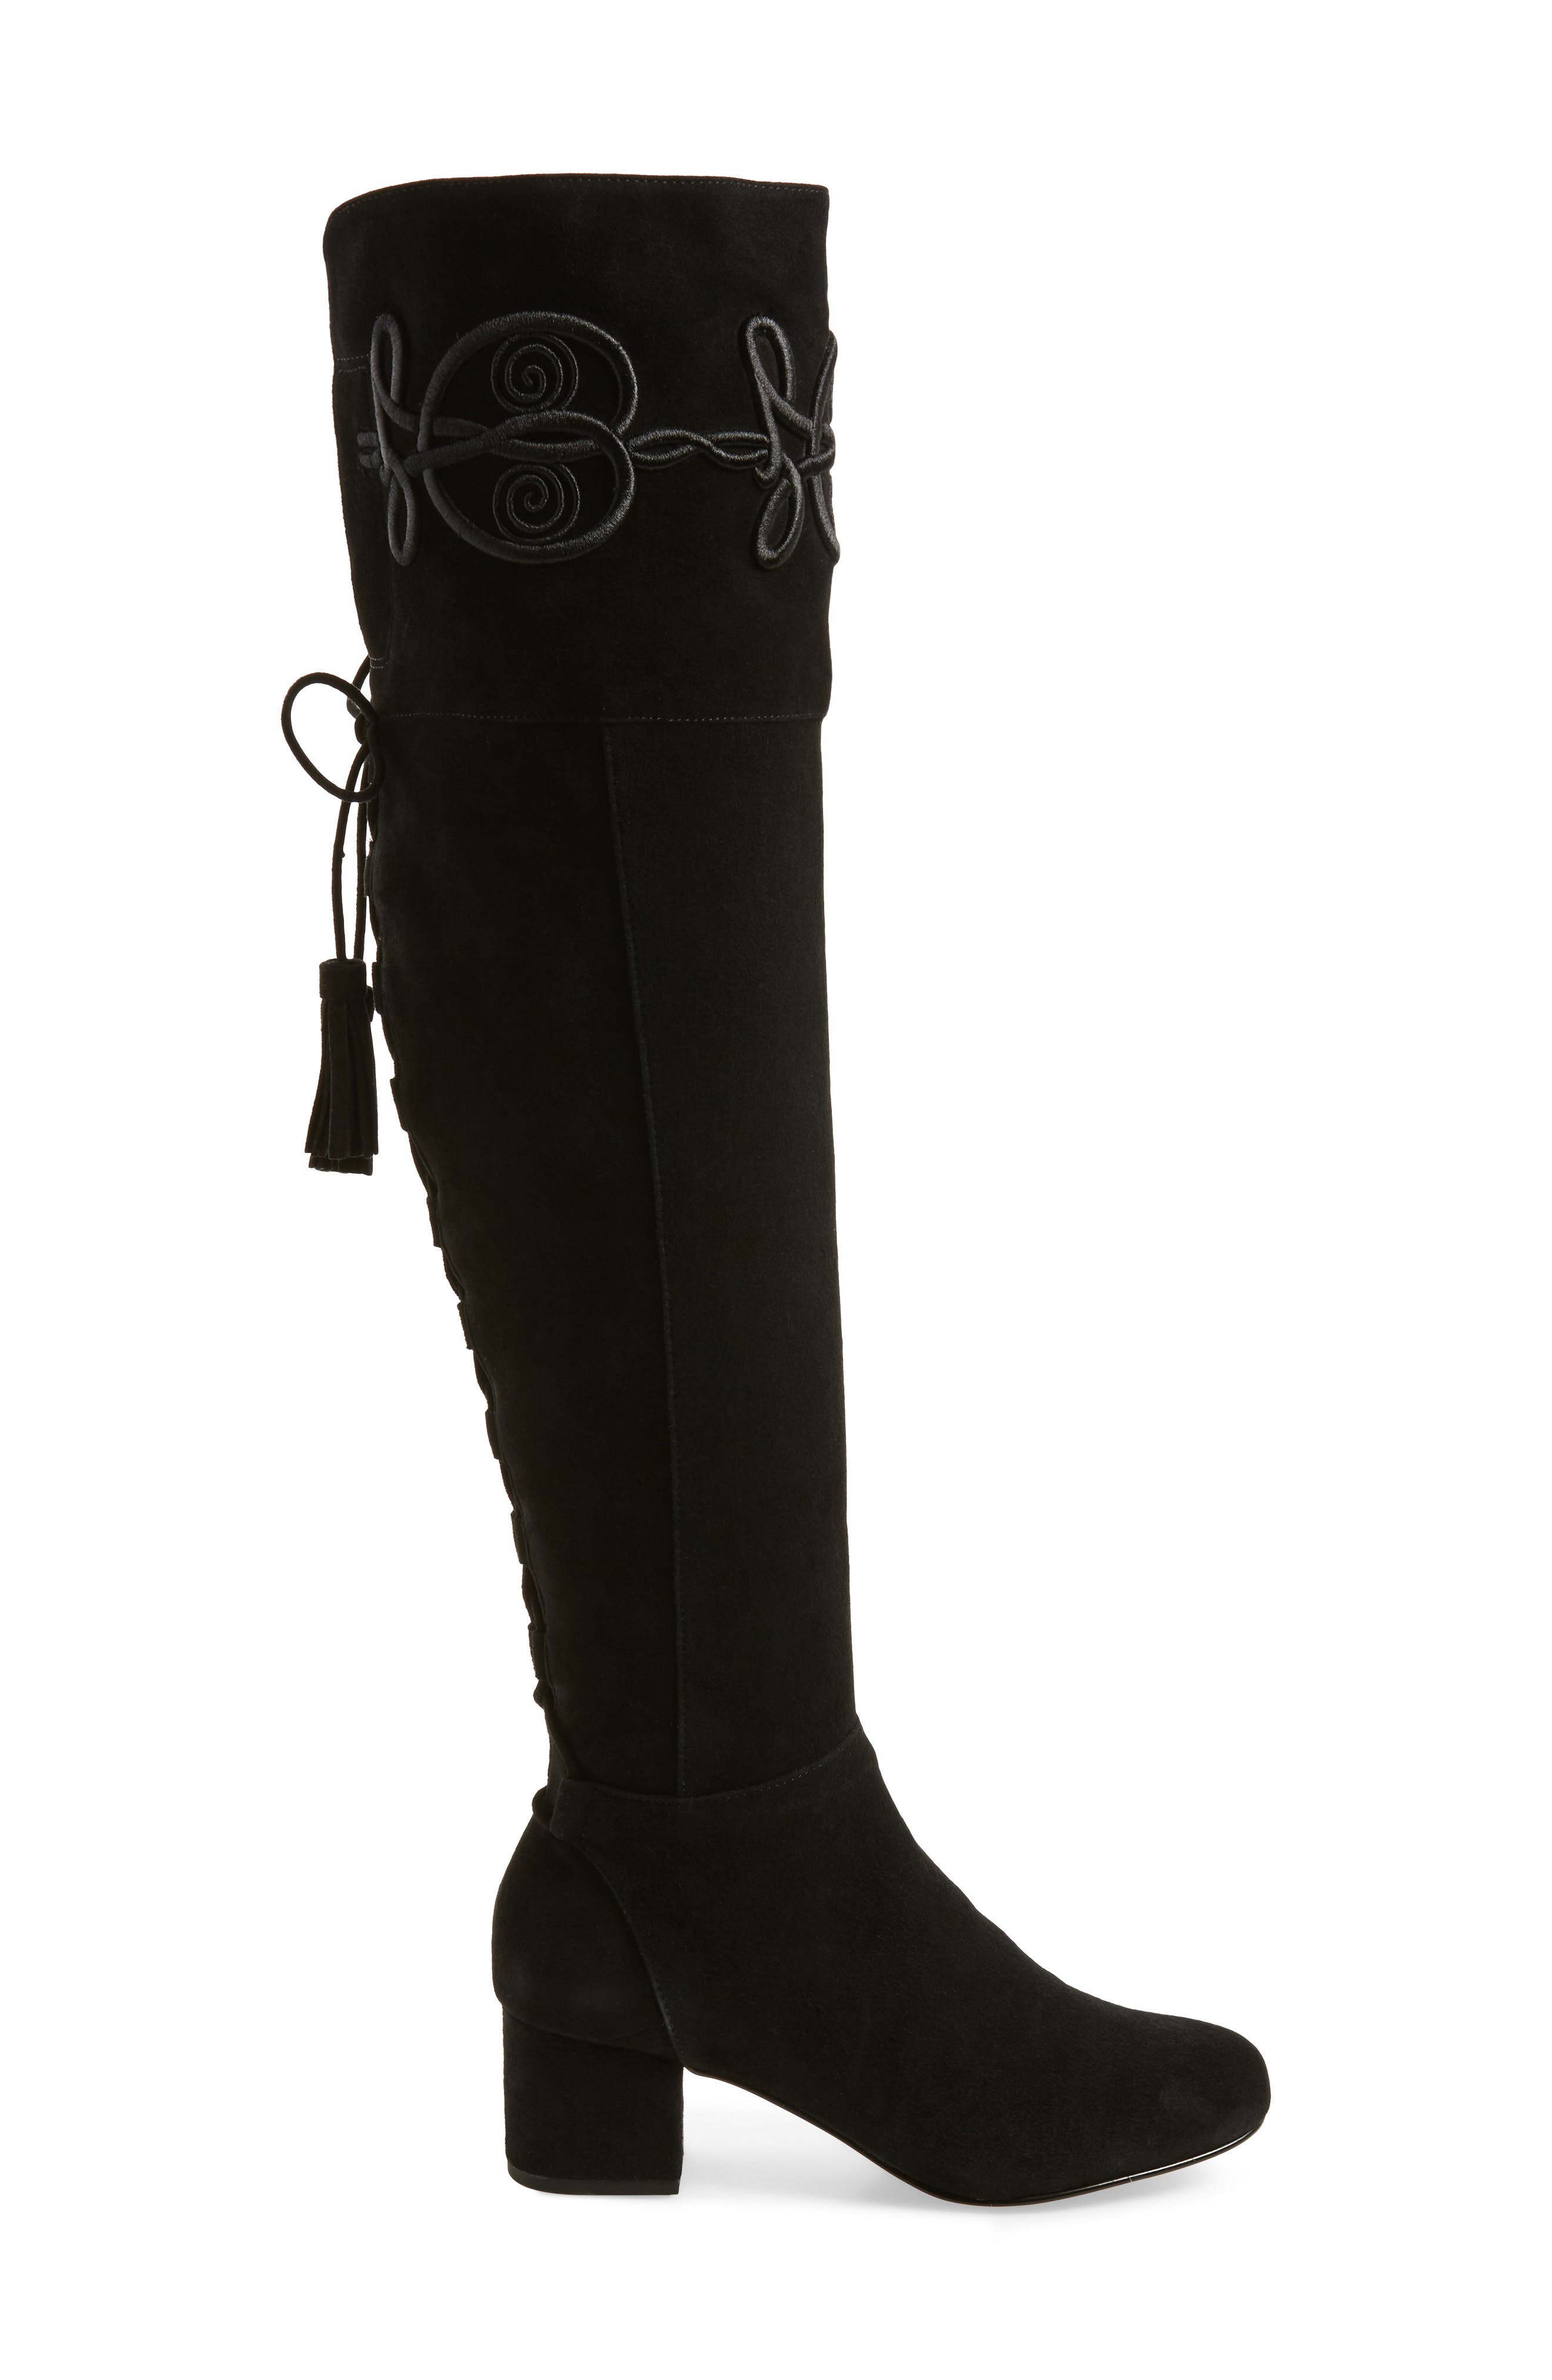 Shiloh Over the Knee Boot,                             Alternate thumbnail 3, color,                             004